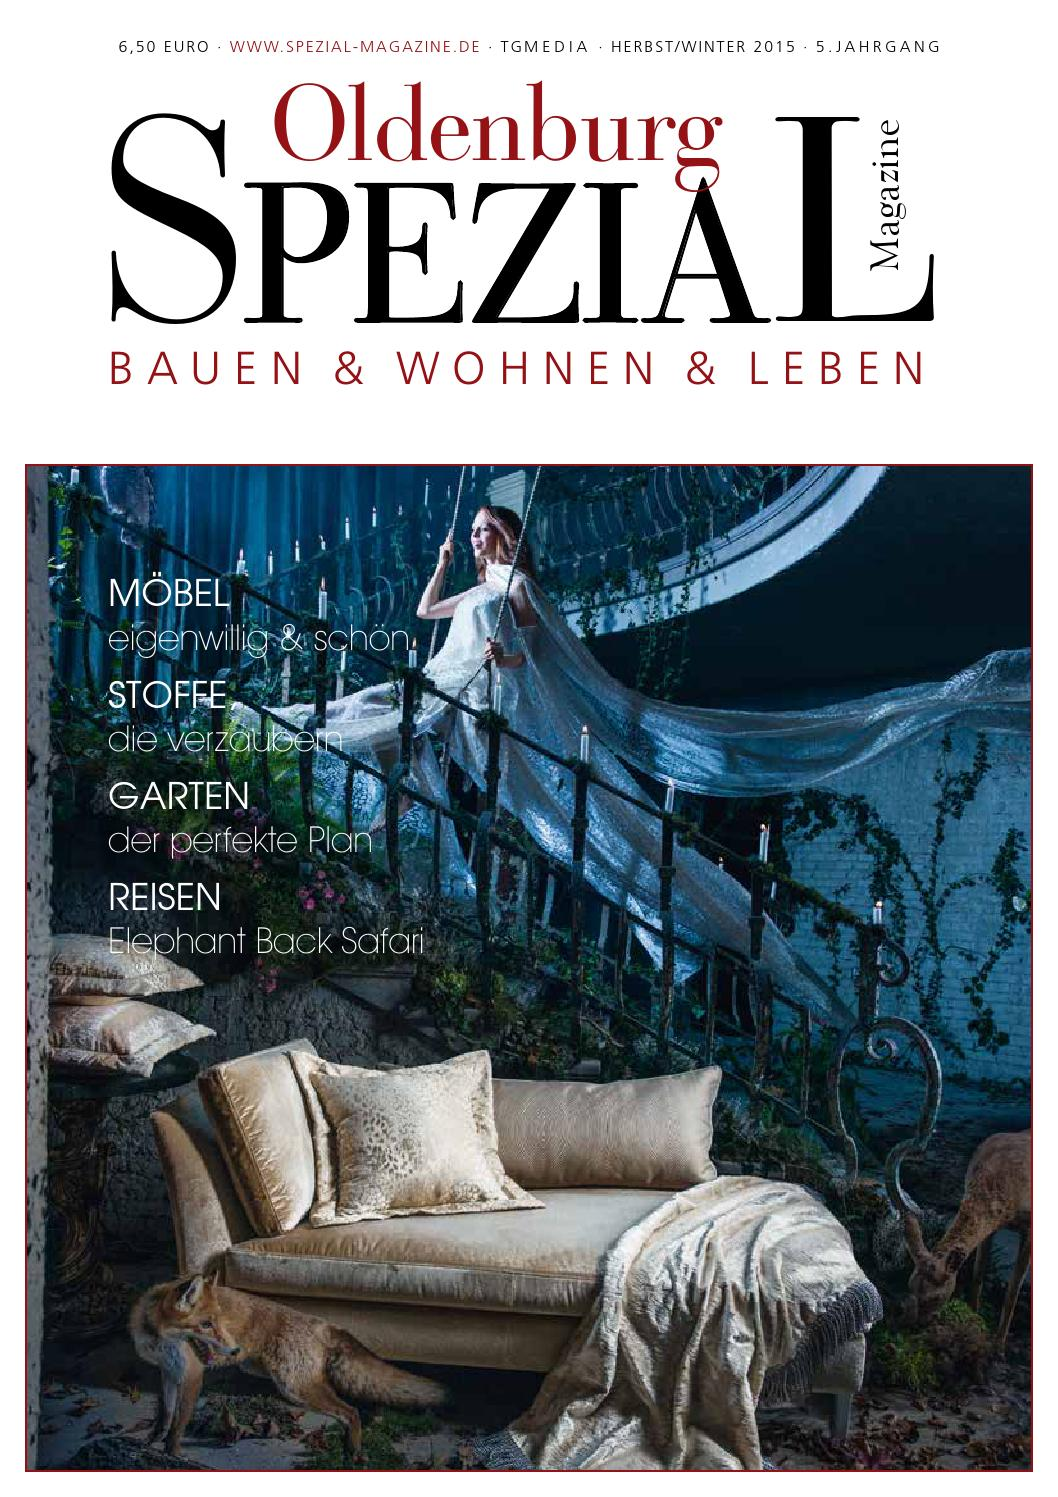 ol spezial bauen wohnen leben by spezial magazine tg. Black Bedroom Furniture Sets. Home Design Ideas